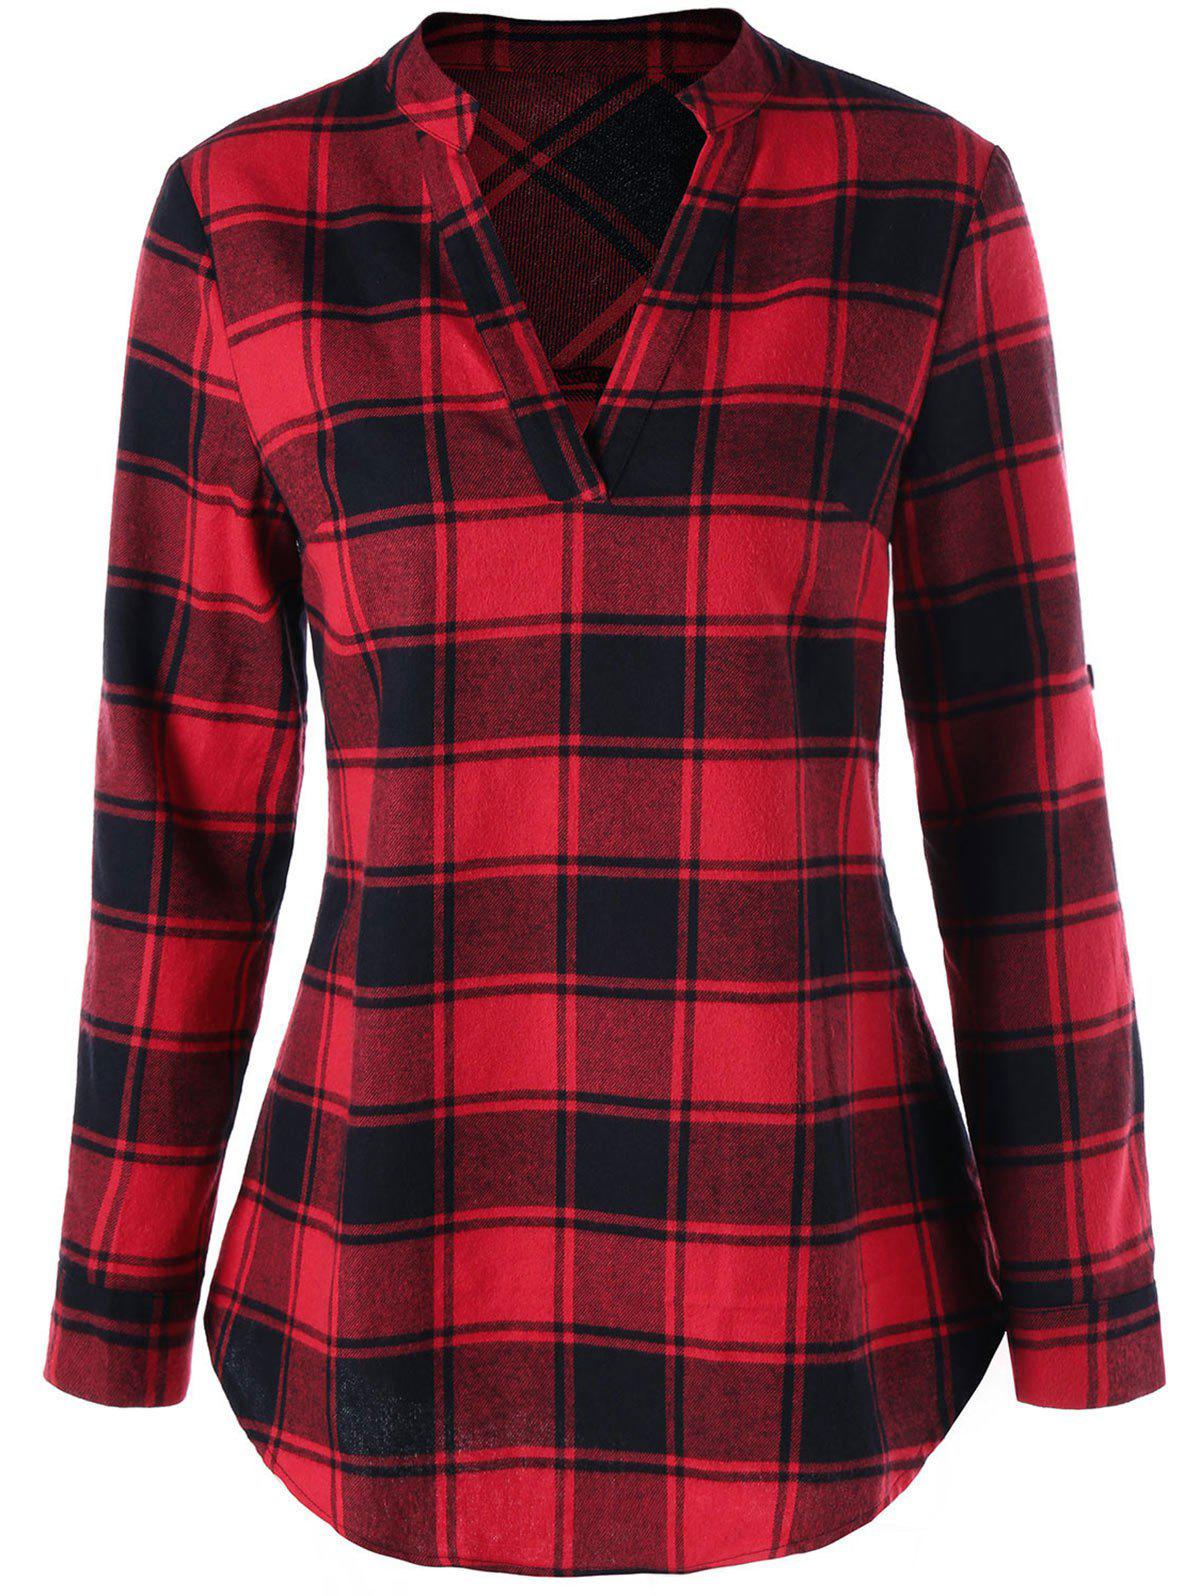 Curved Hem Plaid Blouse op com car vehicle diagnostic tool black